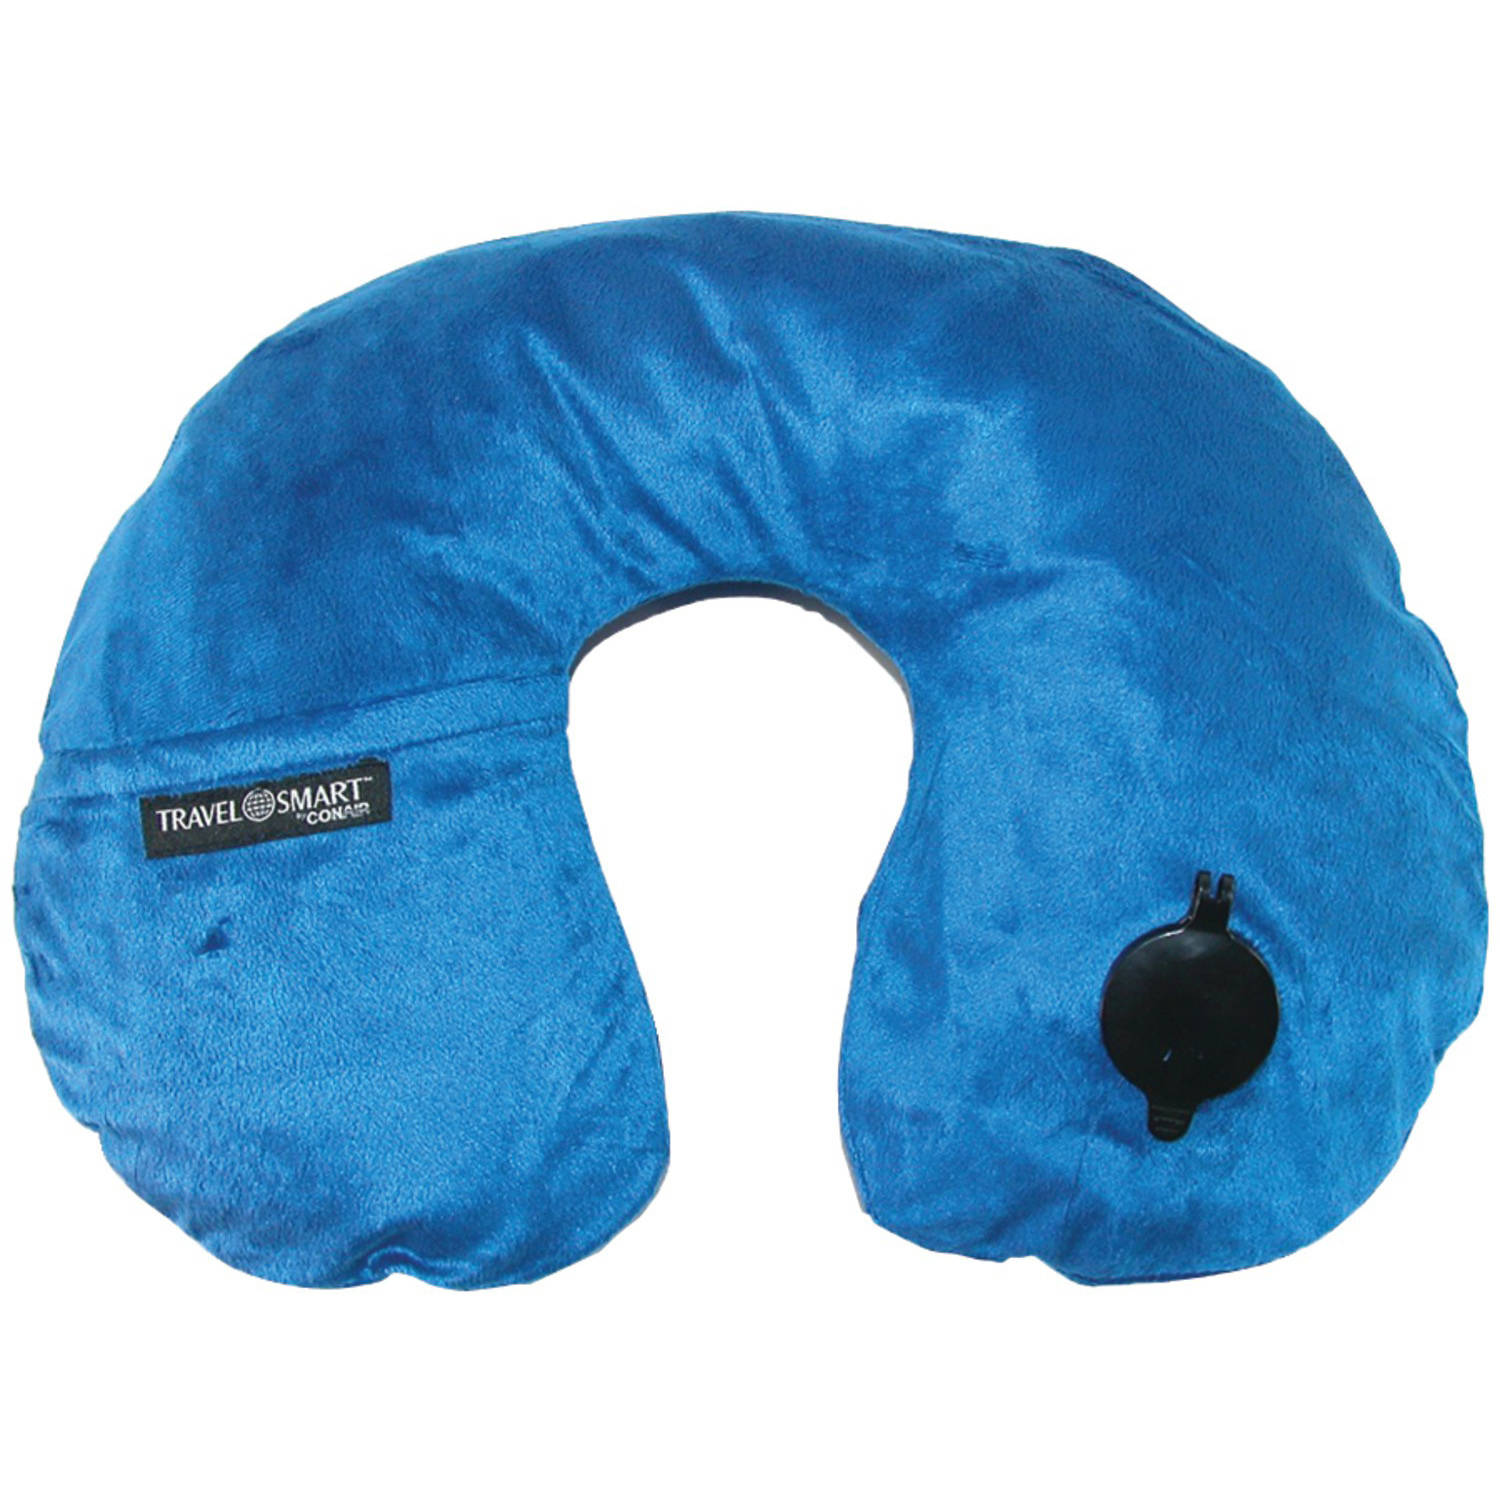 Travel Smart Ts44Nvy Ez Inflate Fleece Neck Rest, Navy